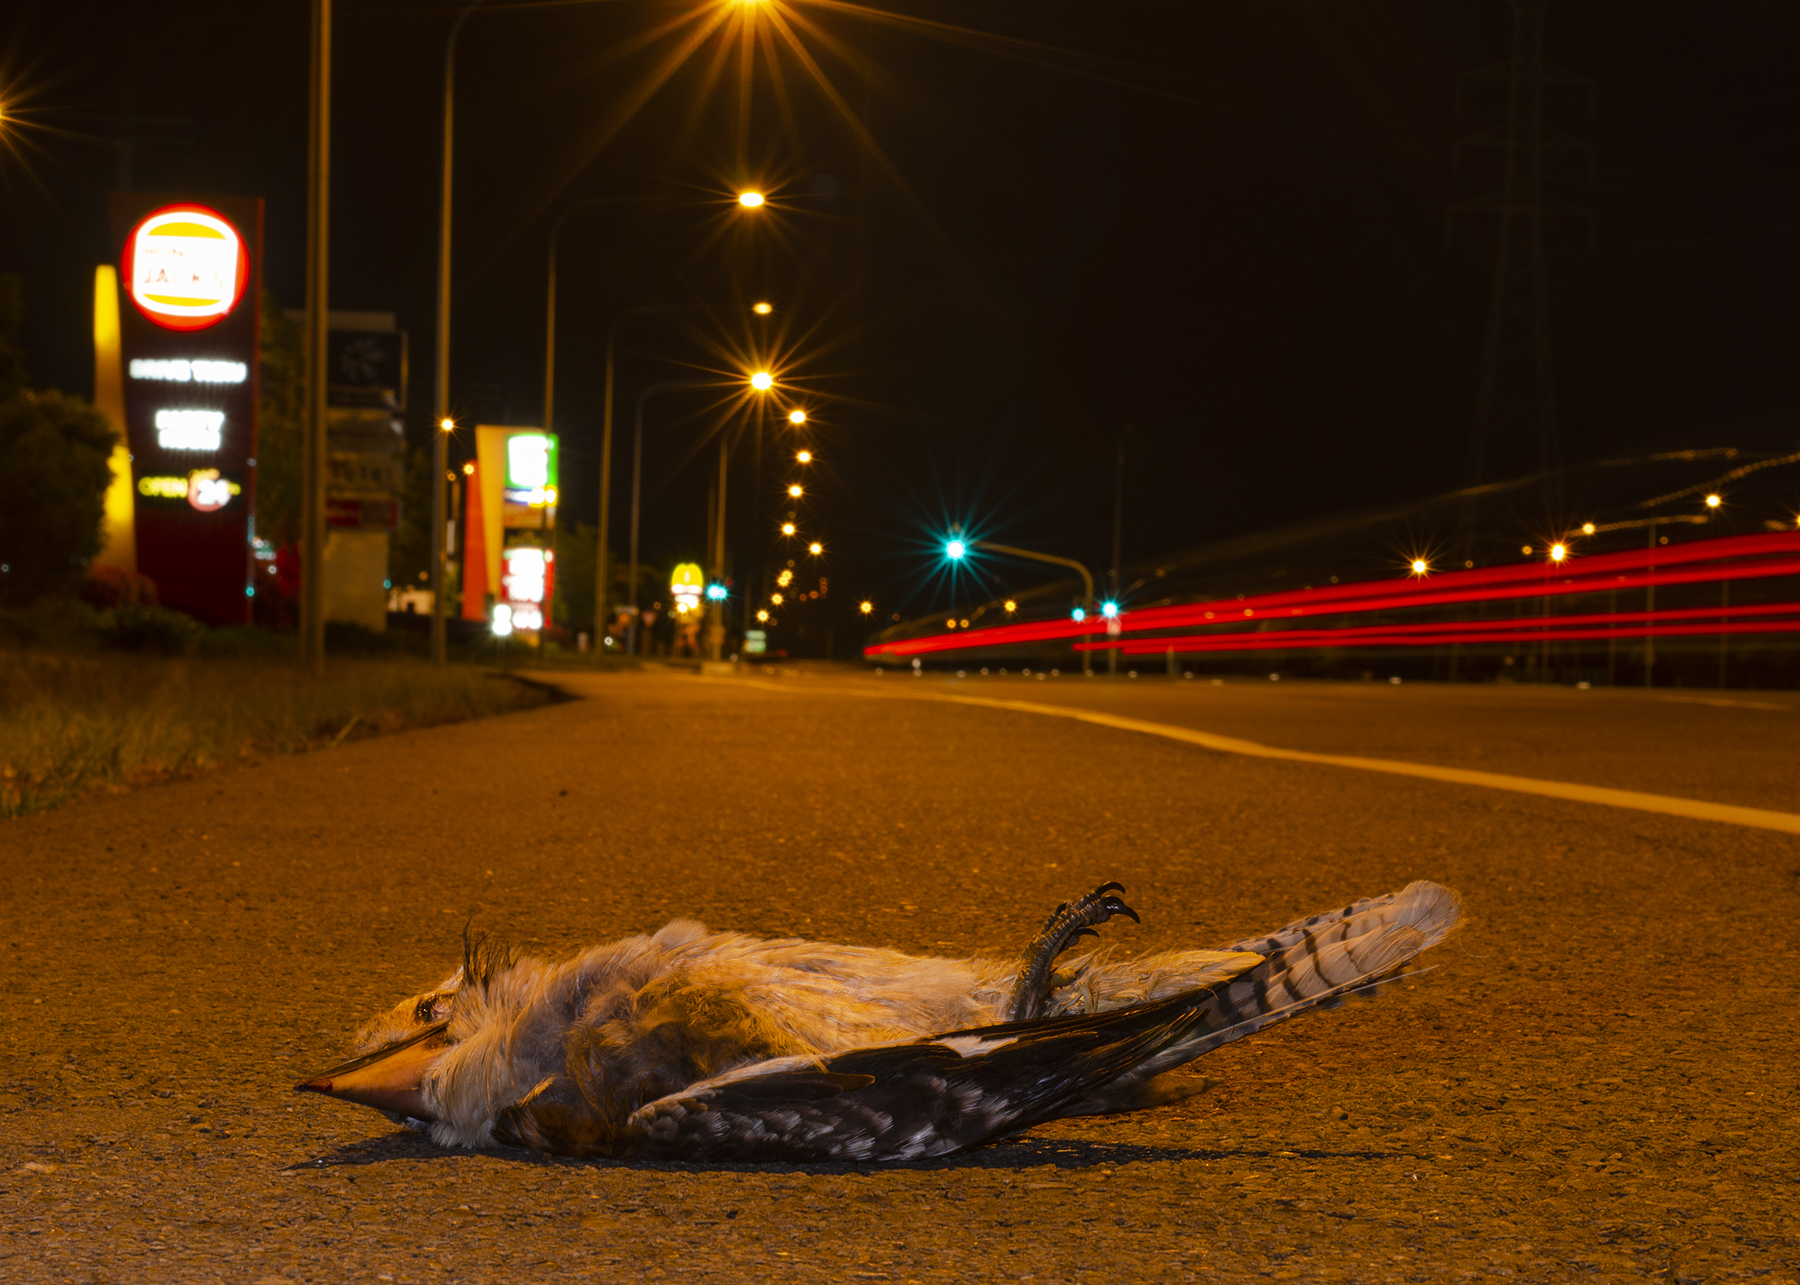 Iconic Roadkill by Heyn De Kock